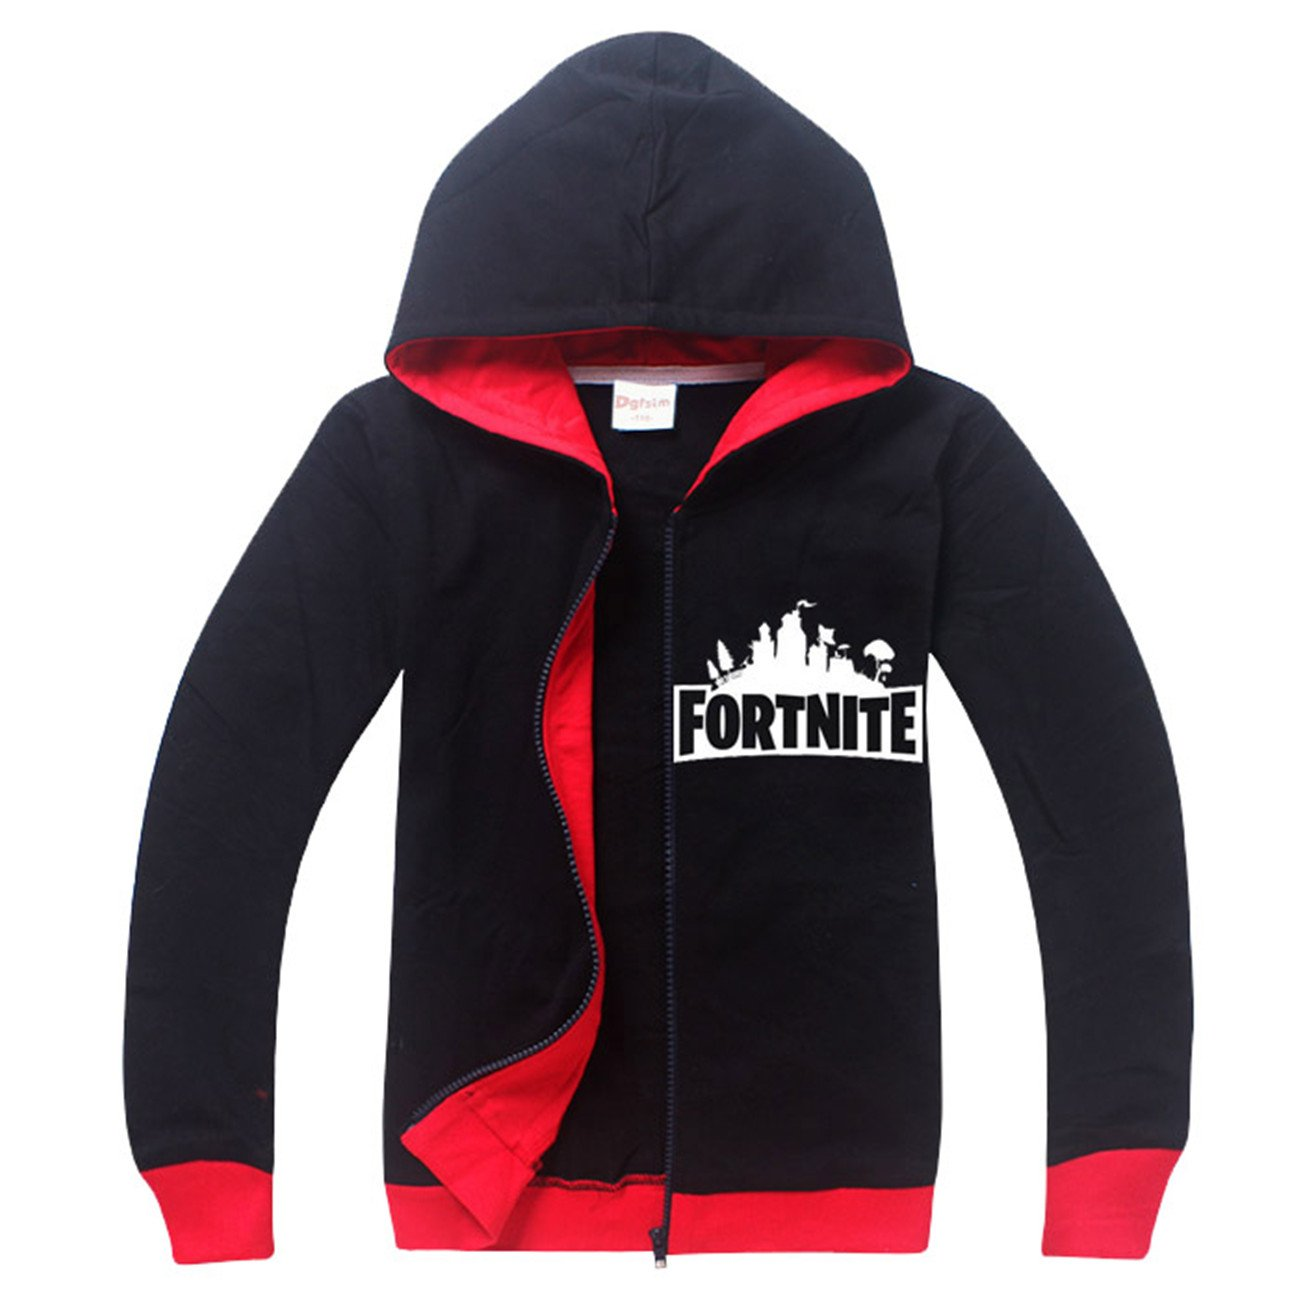 SERAPHY Fortnite Hoodies PS4 Gaming Unisex Top Sweaters Jumper Long Sleeve Jackets with Zippers for Kids-Black-130